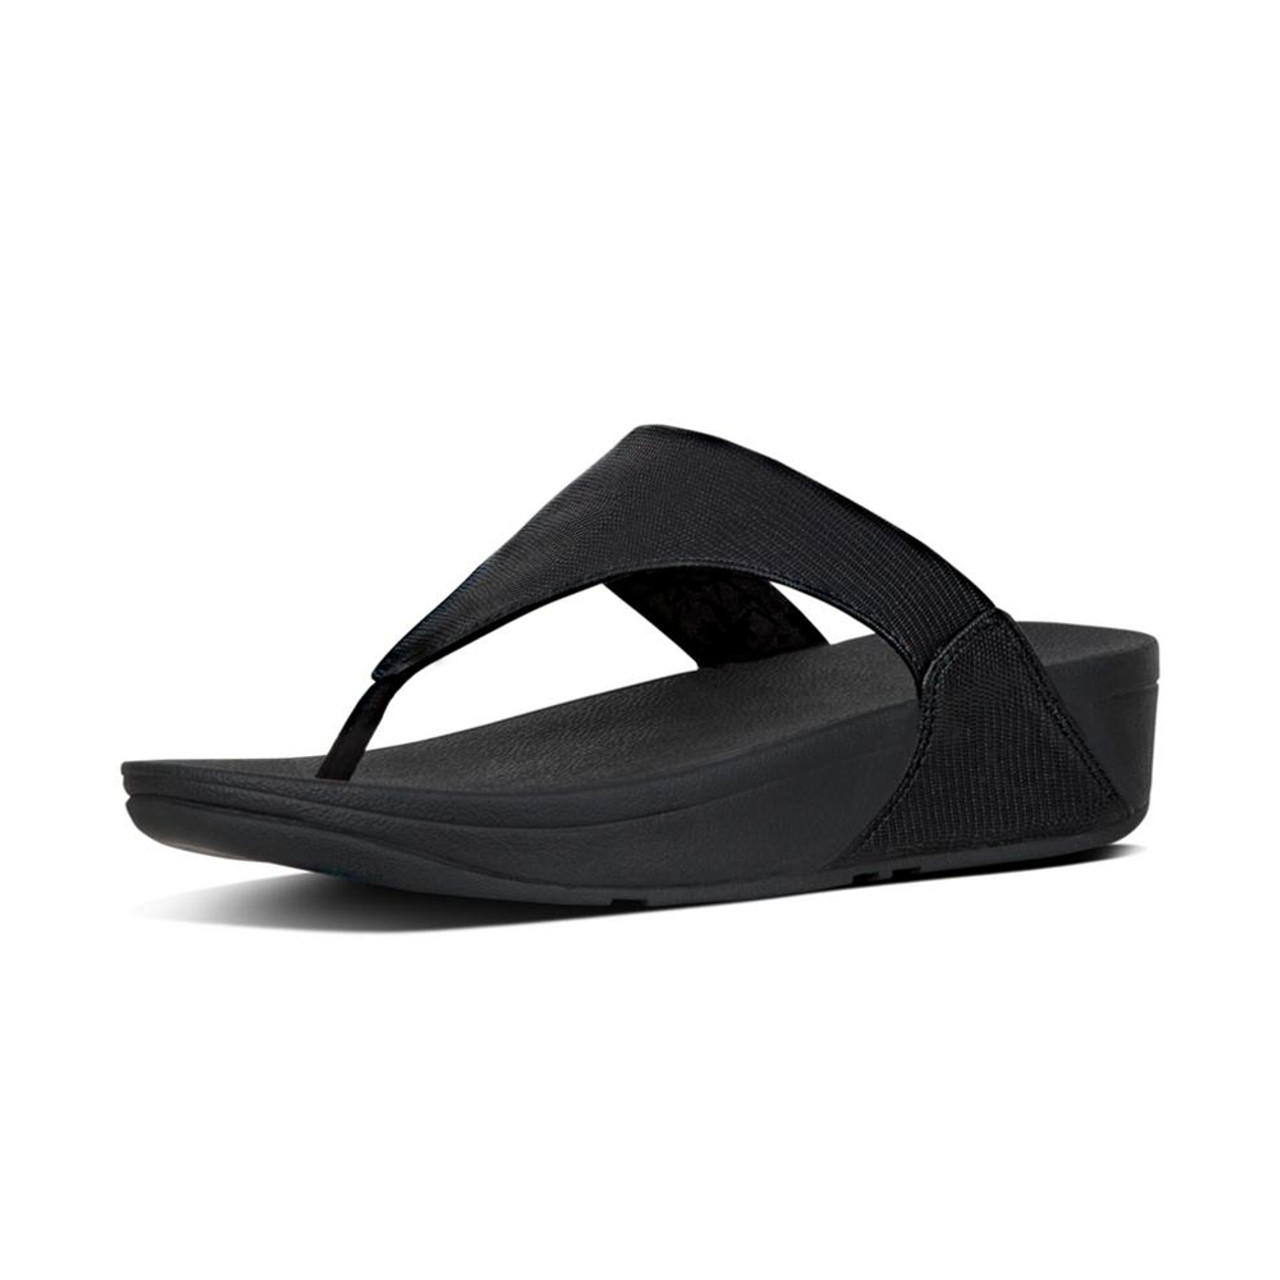 64abcdc53fbe3e Fitflop Women s Lulu Leather Thong Sandal Black - Shop now   Shoolu.com